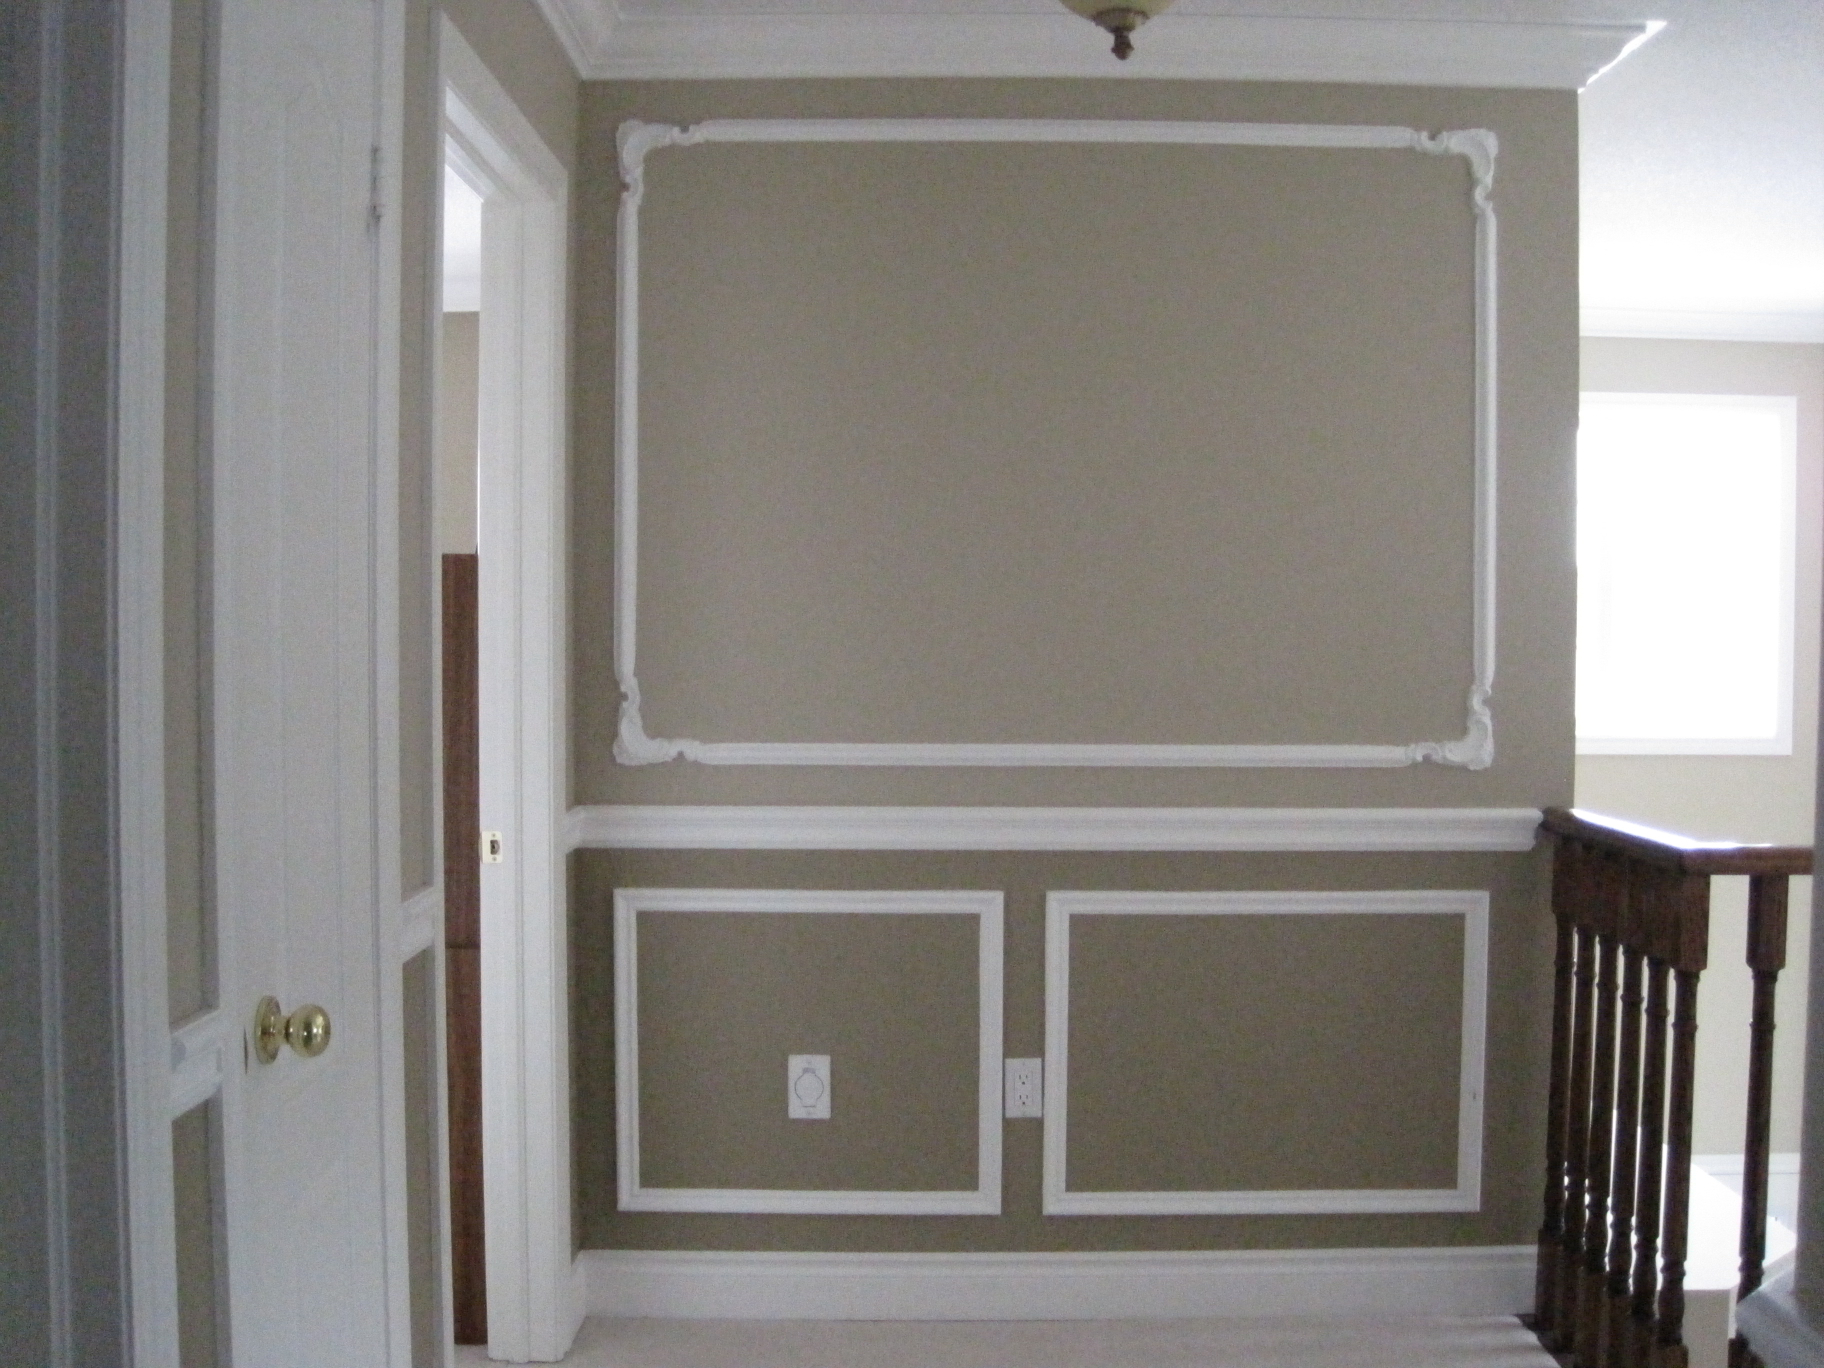 Photos of Wall Frame Moulding submited images